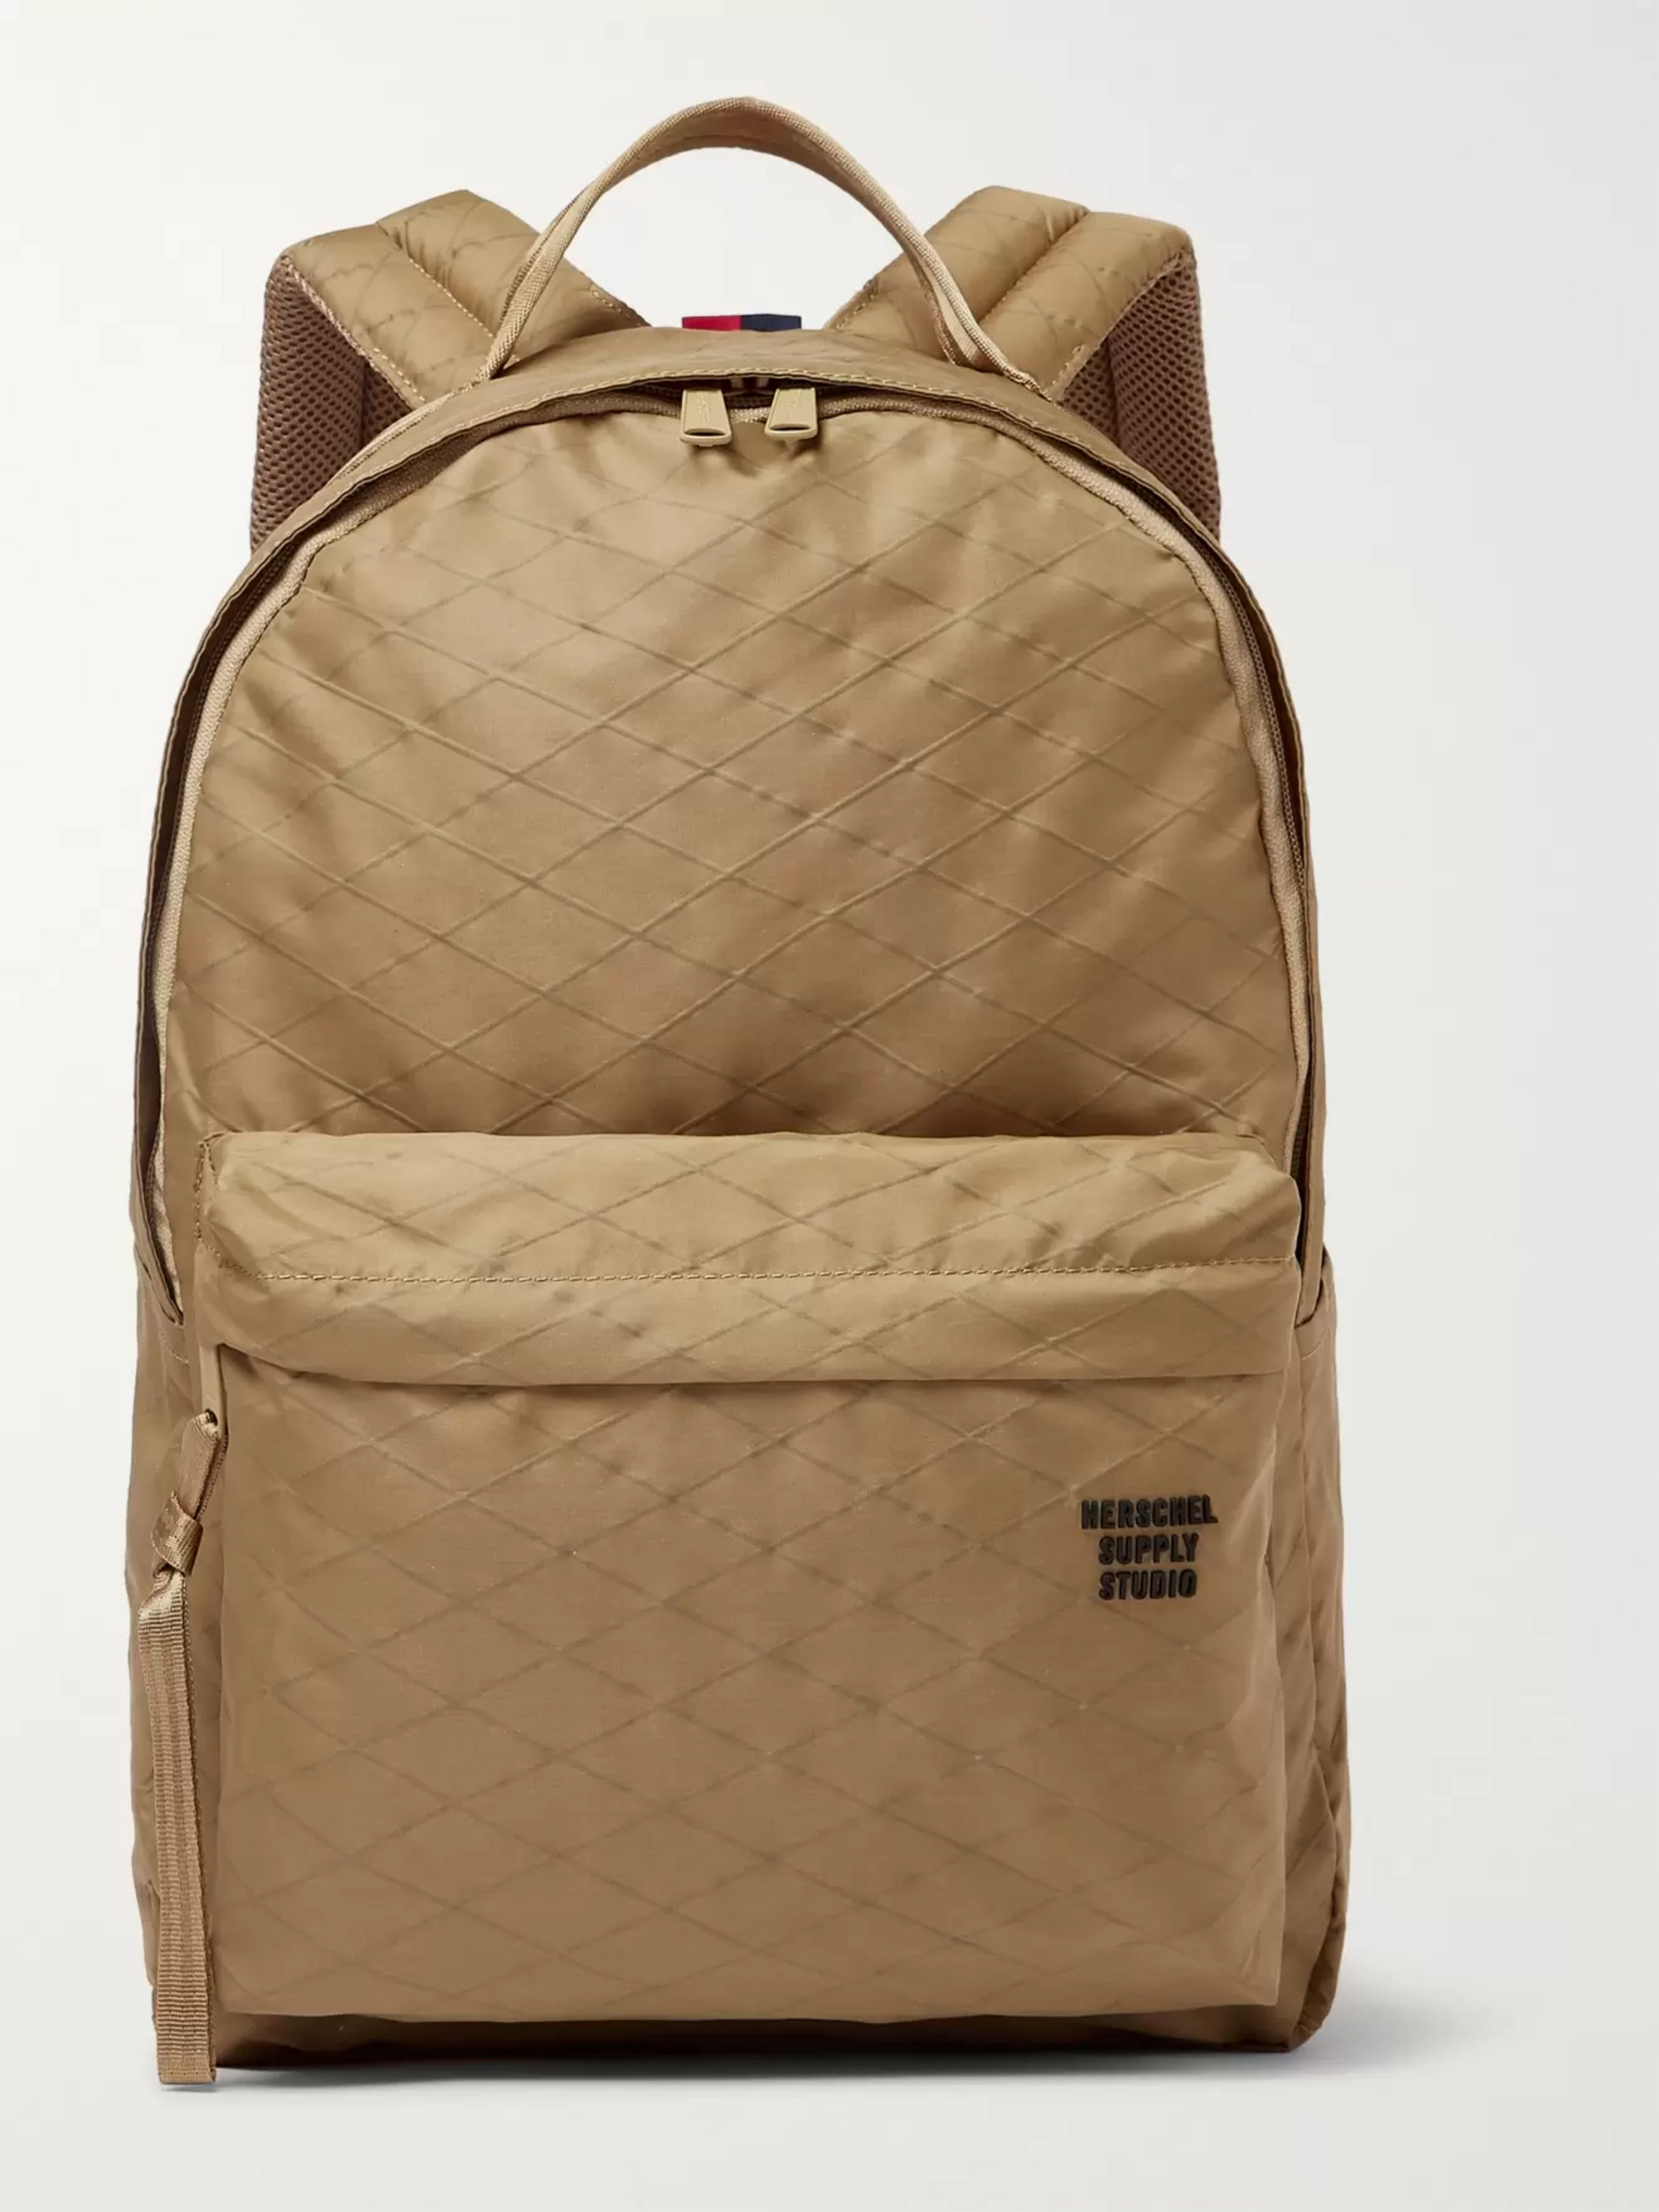 Herschel Supply Co Studio Classic XL Ripstop Backpack